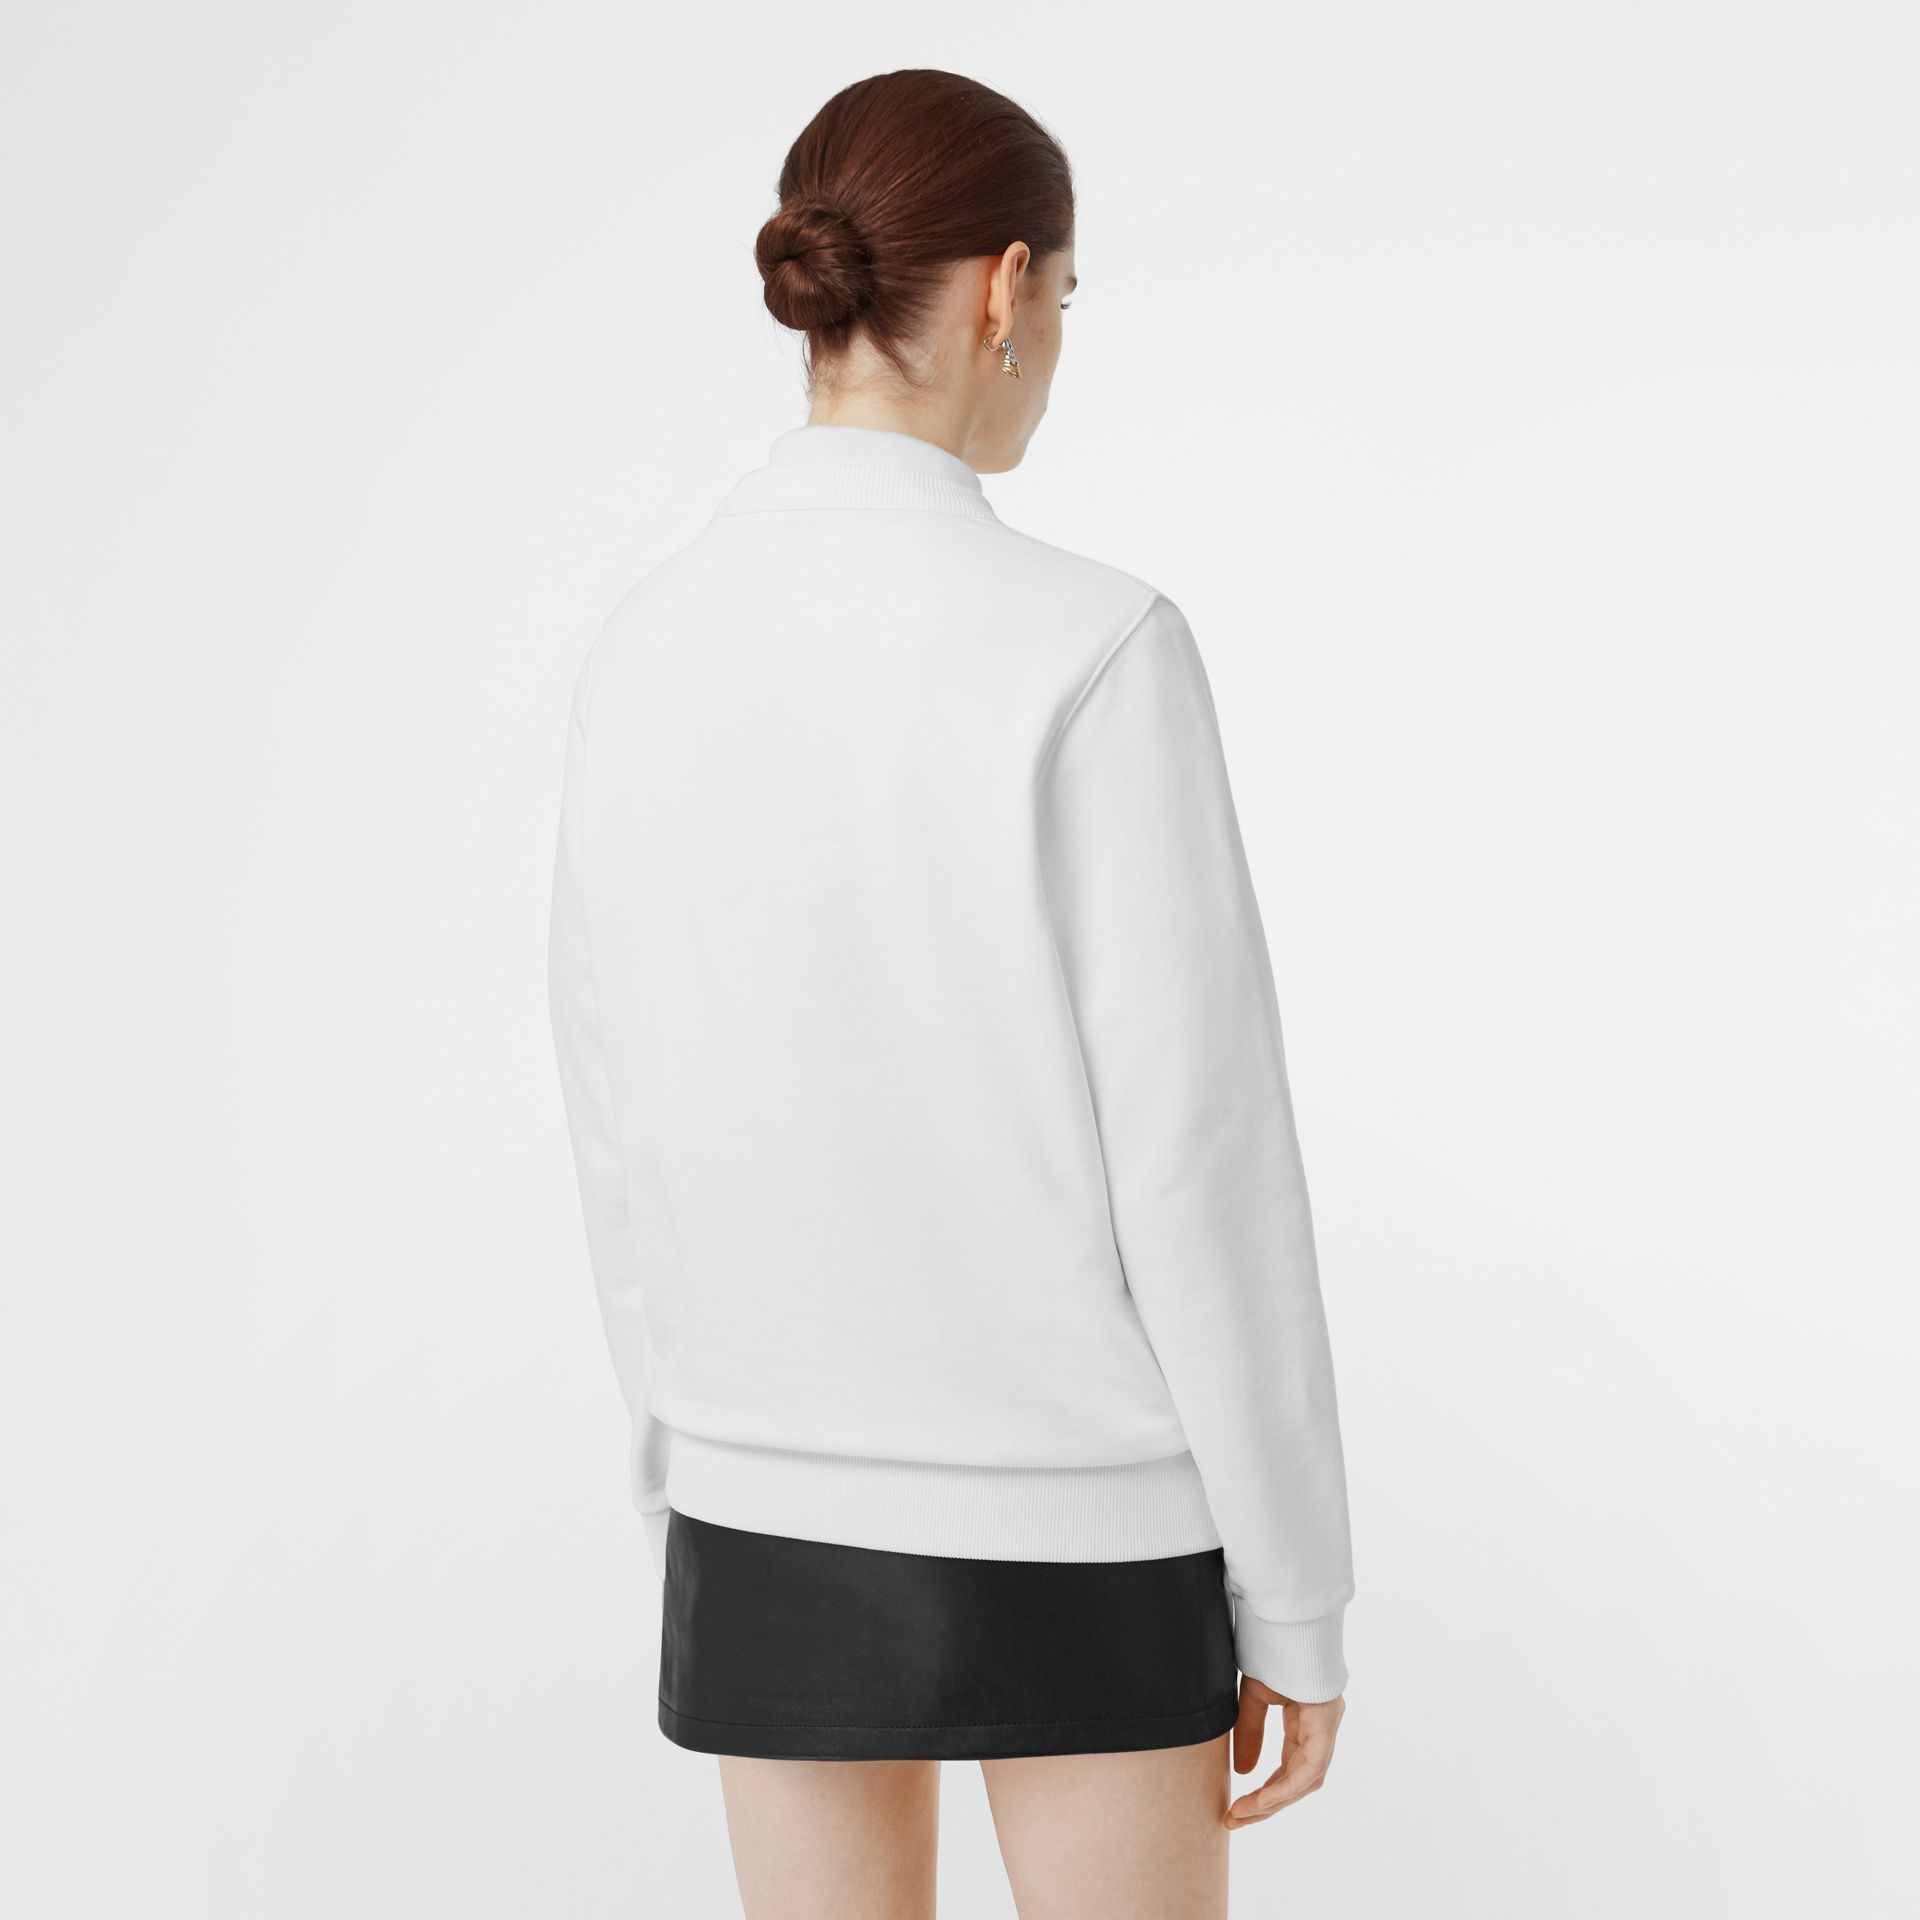 Sweat-shirt en coton avec logo (Blanc) - Femme | Burberry Canada - photo de la galerie 2